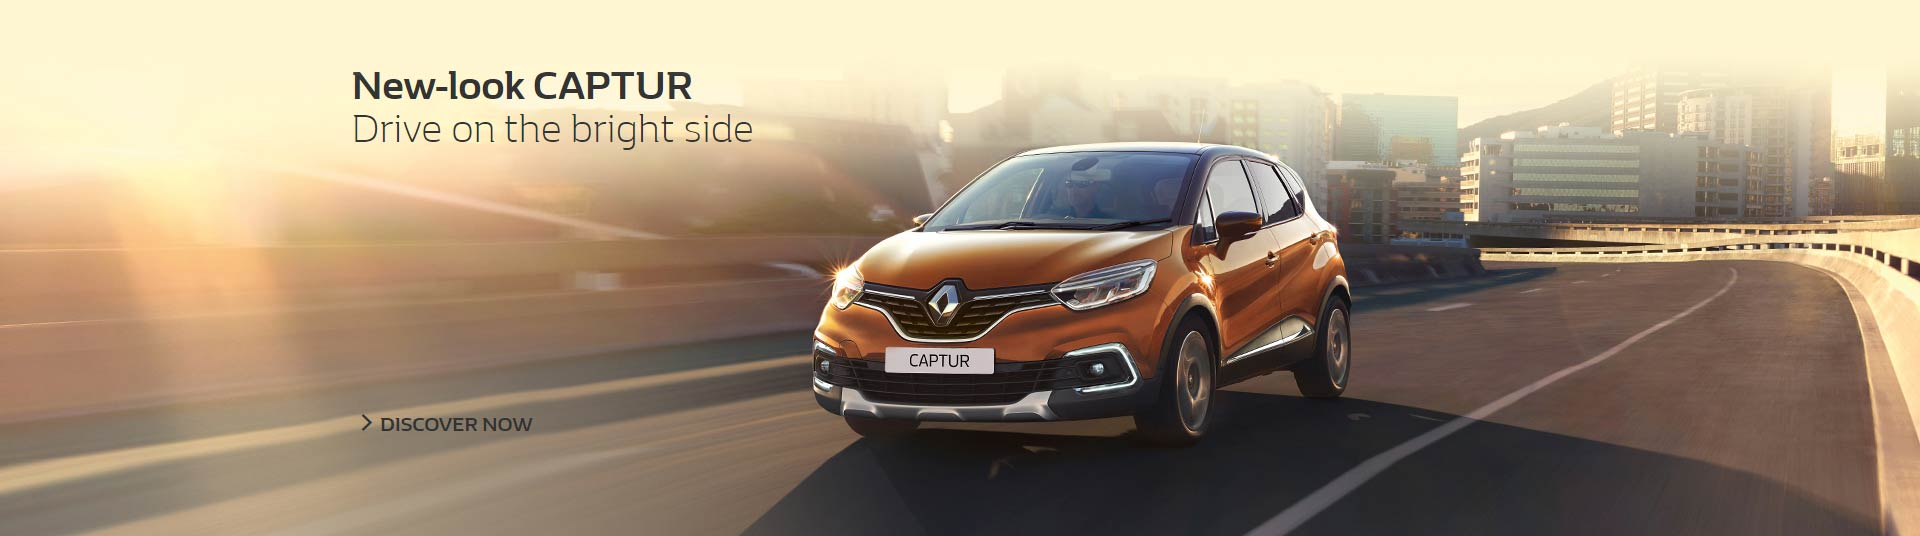 New-look Captur